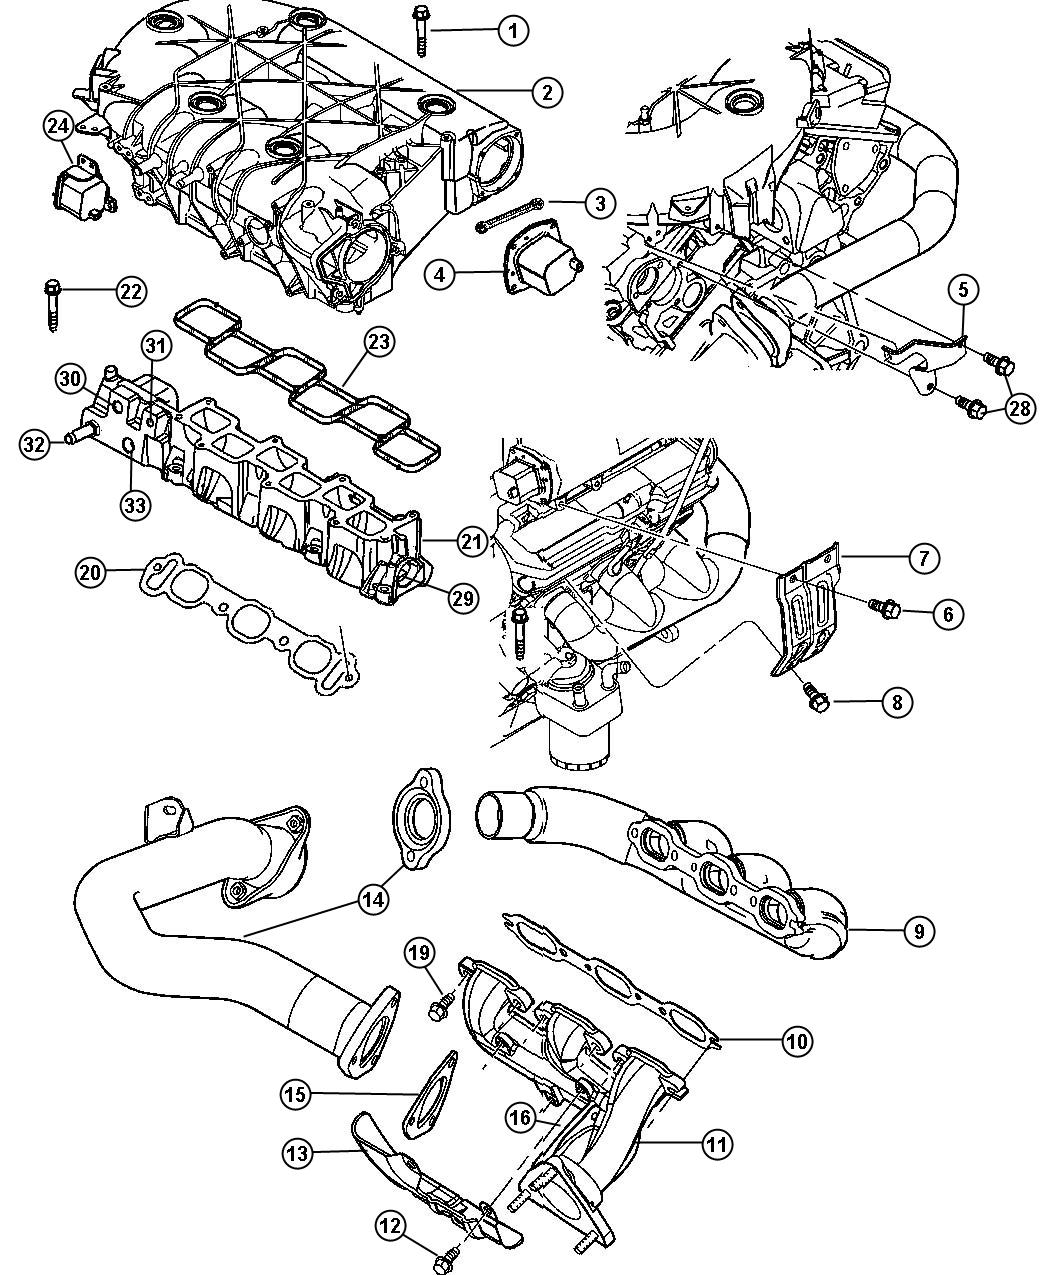 Chrysler 3 5l Intake Diagram